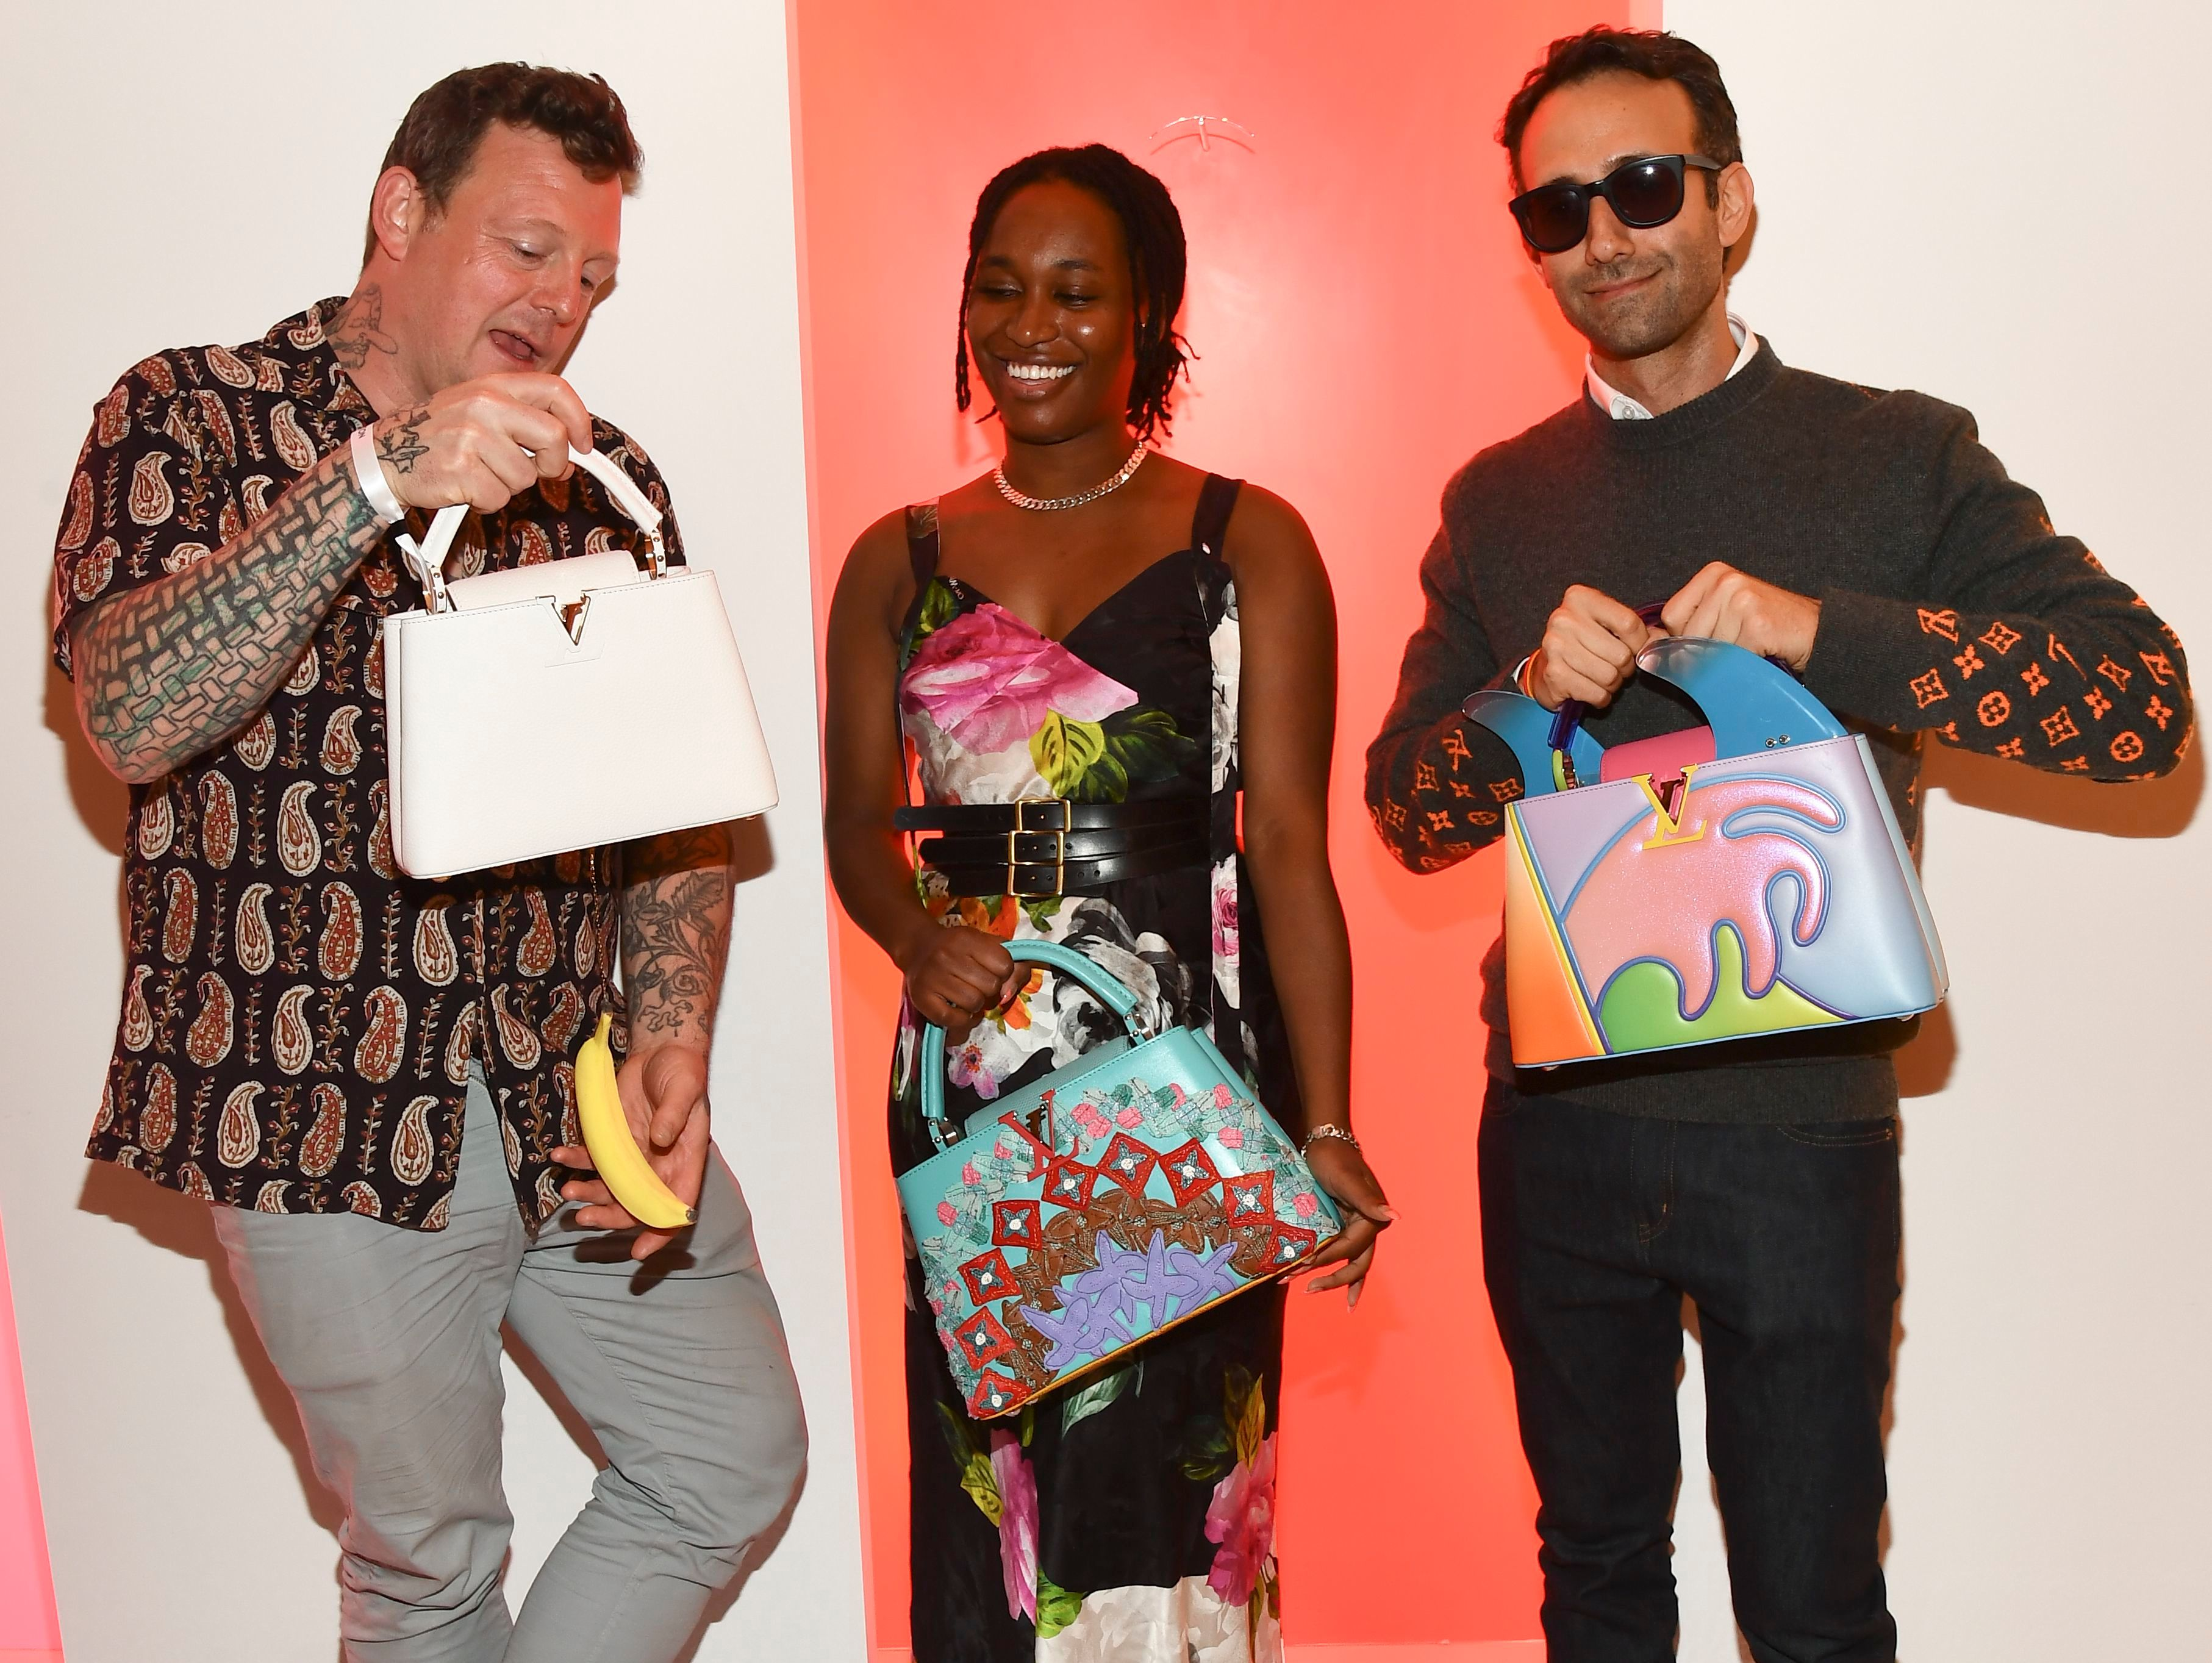 Urs Fischer, Tschabalala Self and Alex IsraelOpening of Louis Vuitton X Cocktail Party, Inside, Los Angeles, USA - 27 Jun 2019